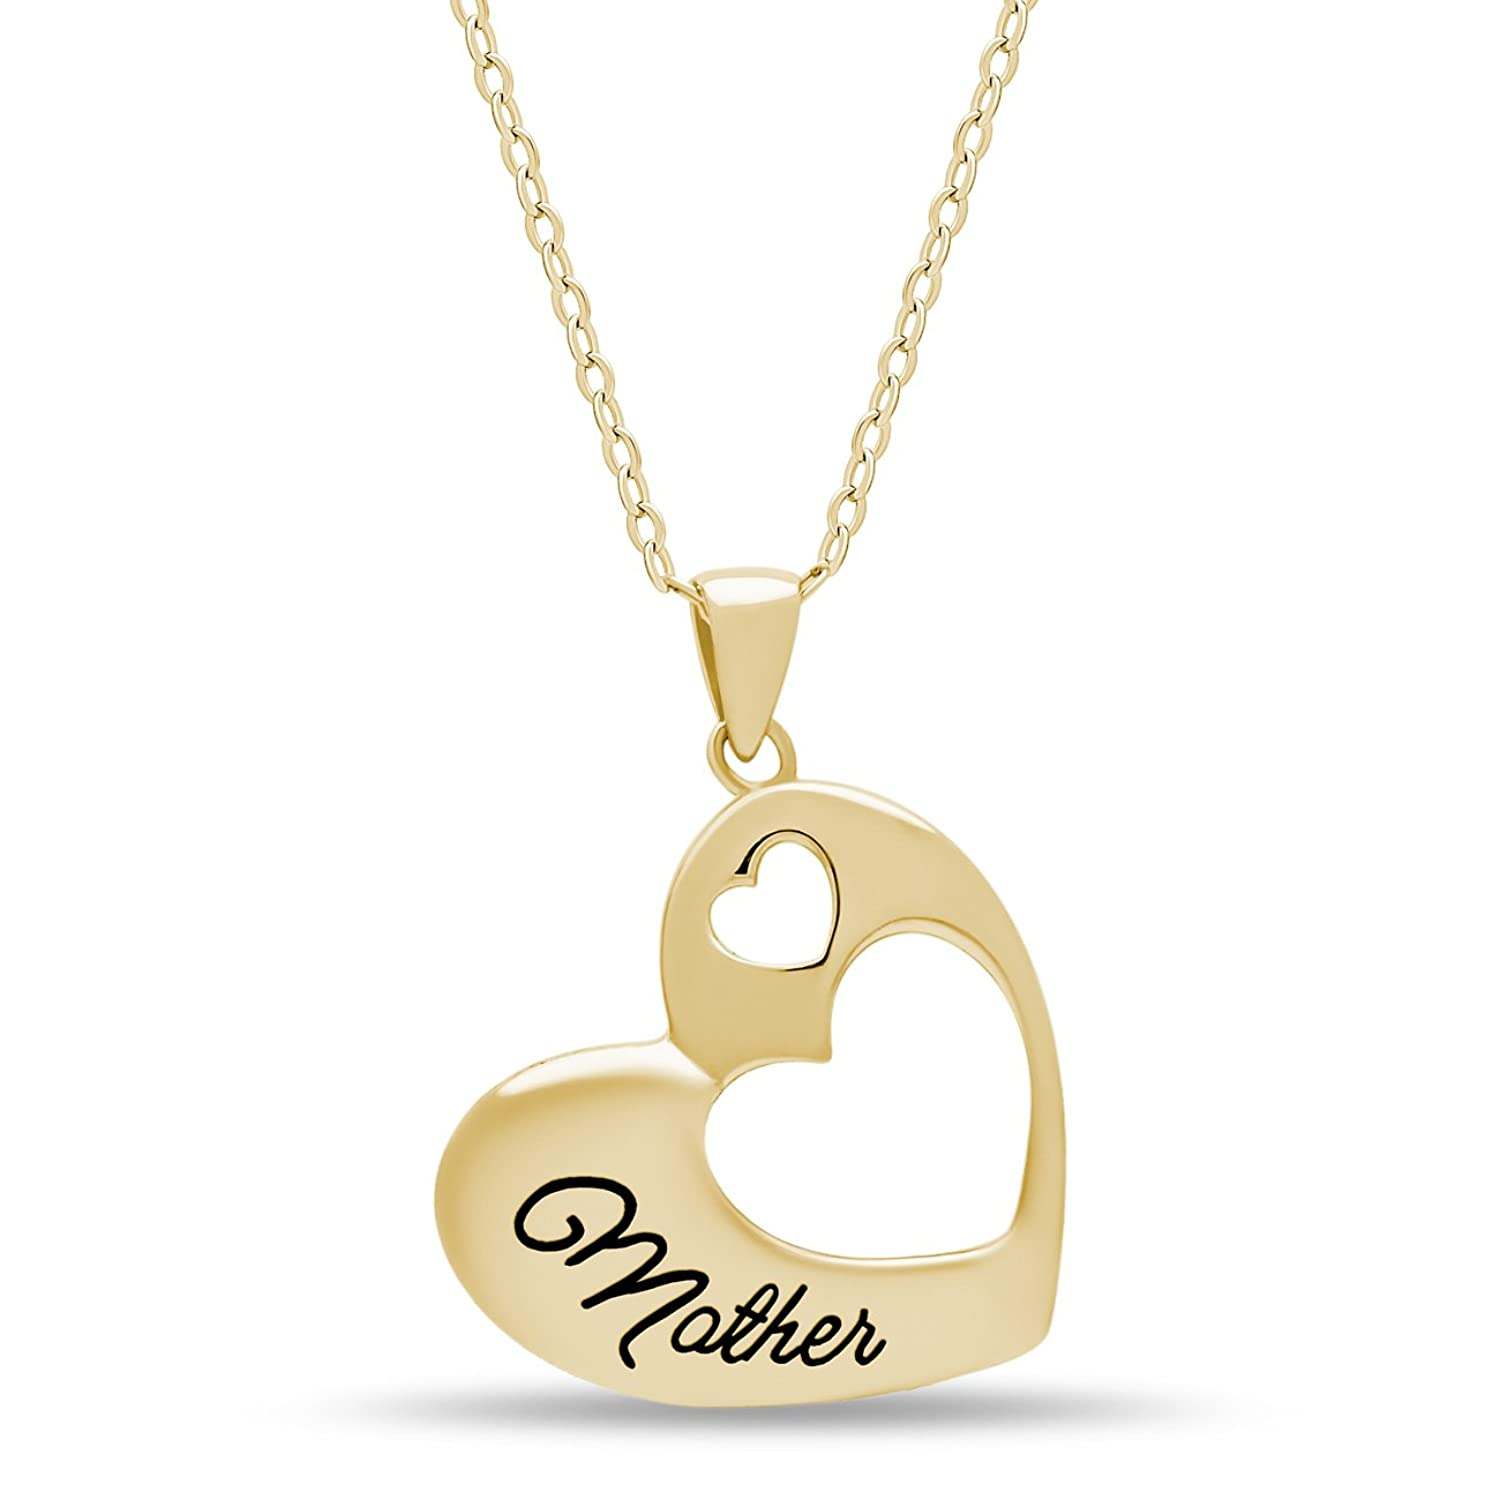 """925 Sterling Silver Elegant Mother Necklace Silver Double Heart Necklace for Mom """"Mother"""" Silver or 14k Gold Plated Heart Pendant for Mother Two Heart Necklace 16inch + 2"""" Ext w SpringRing Clasp"""